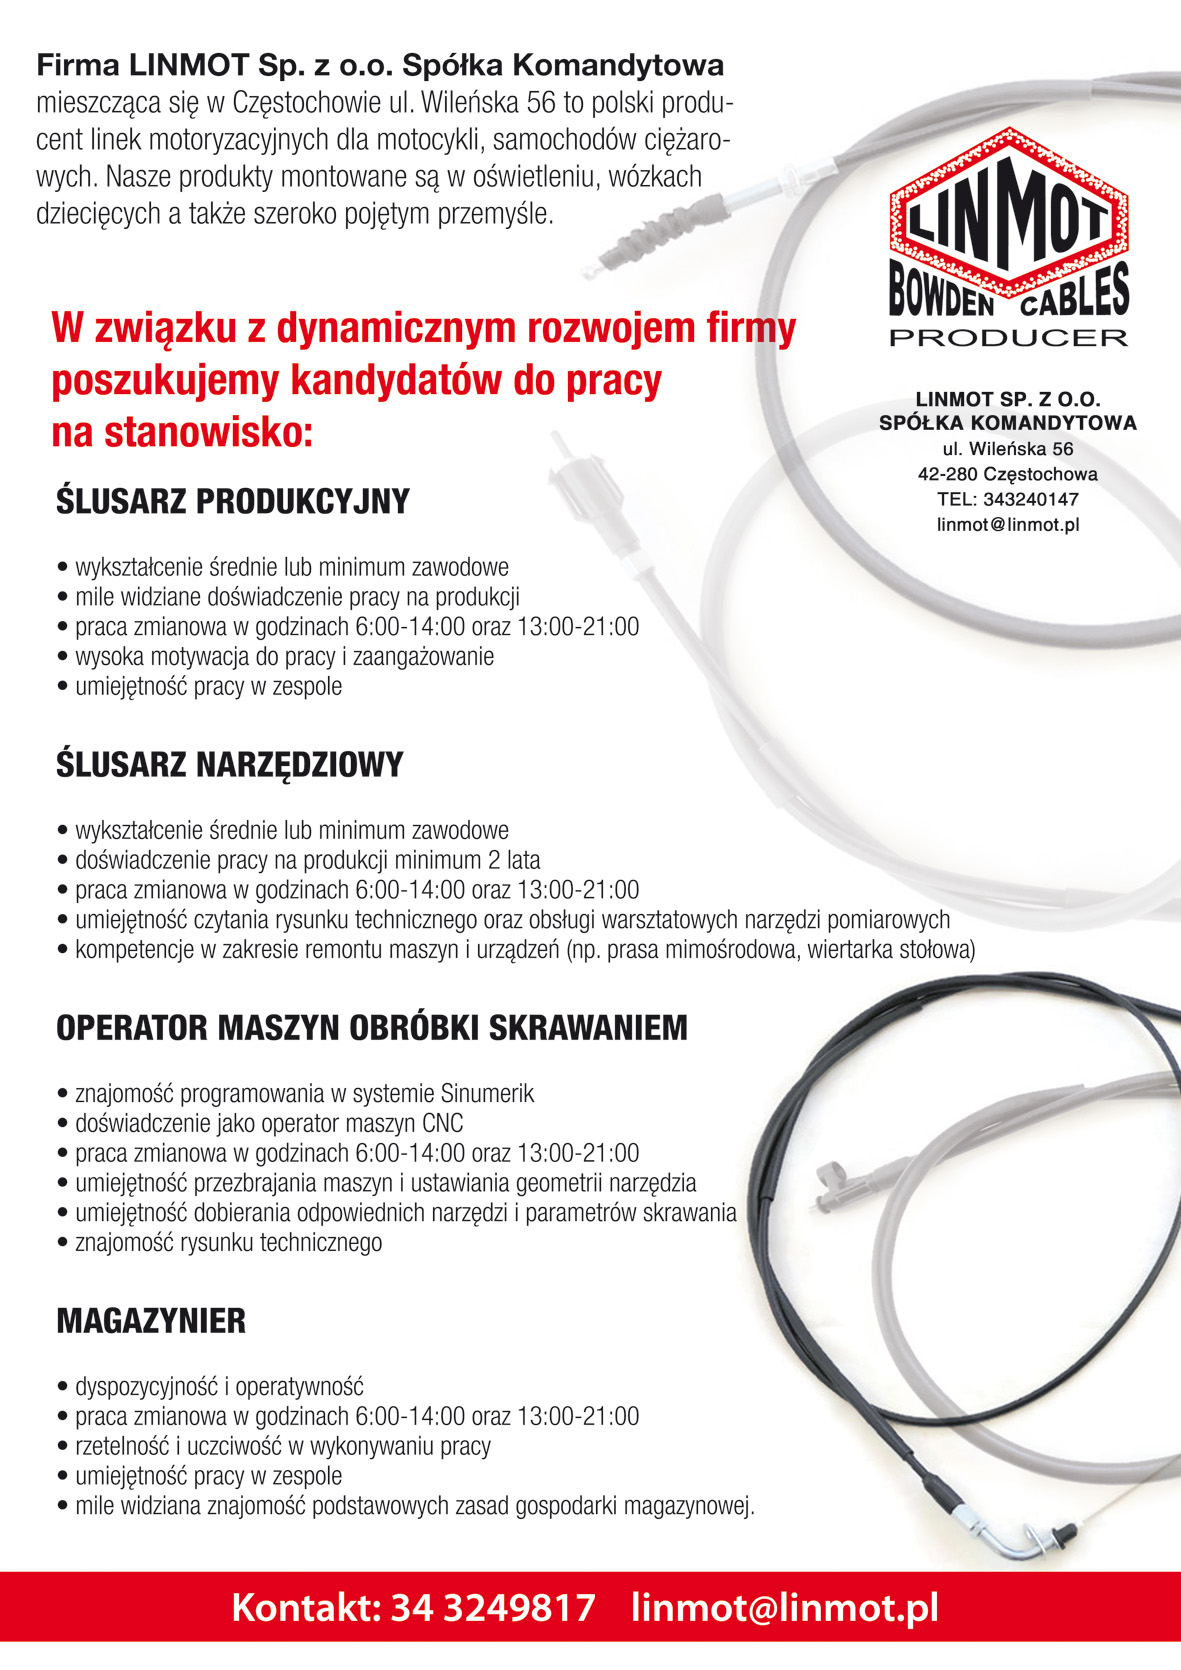 Plakat Linmot Bowden Cables Producer oferta pracy